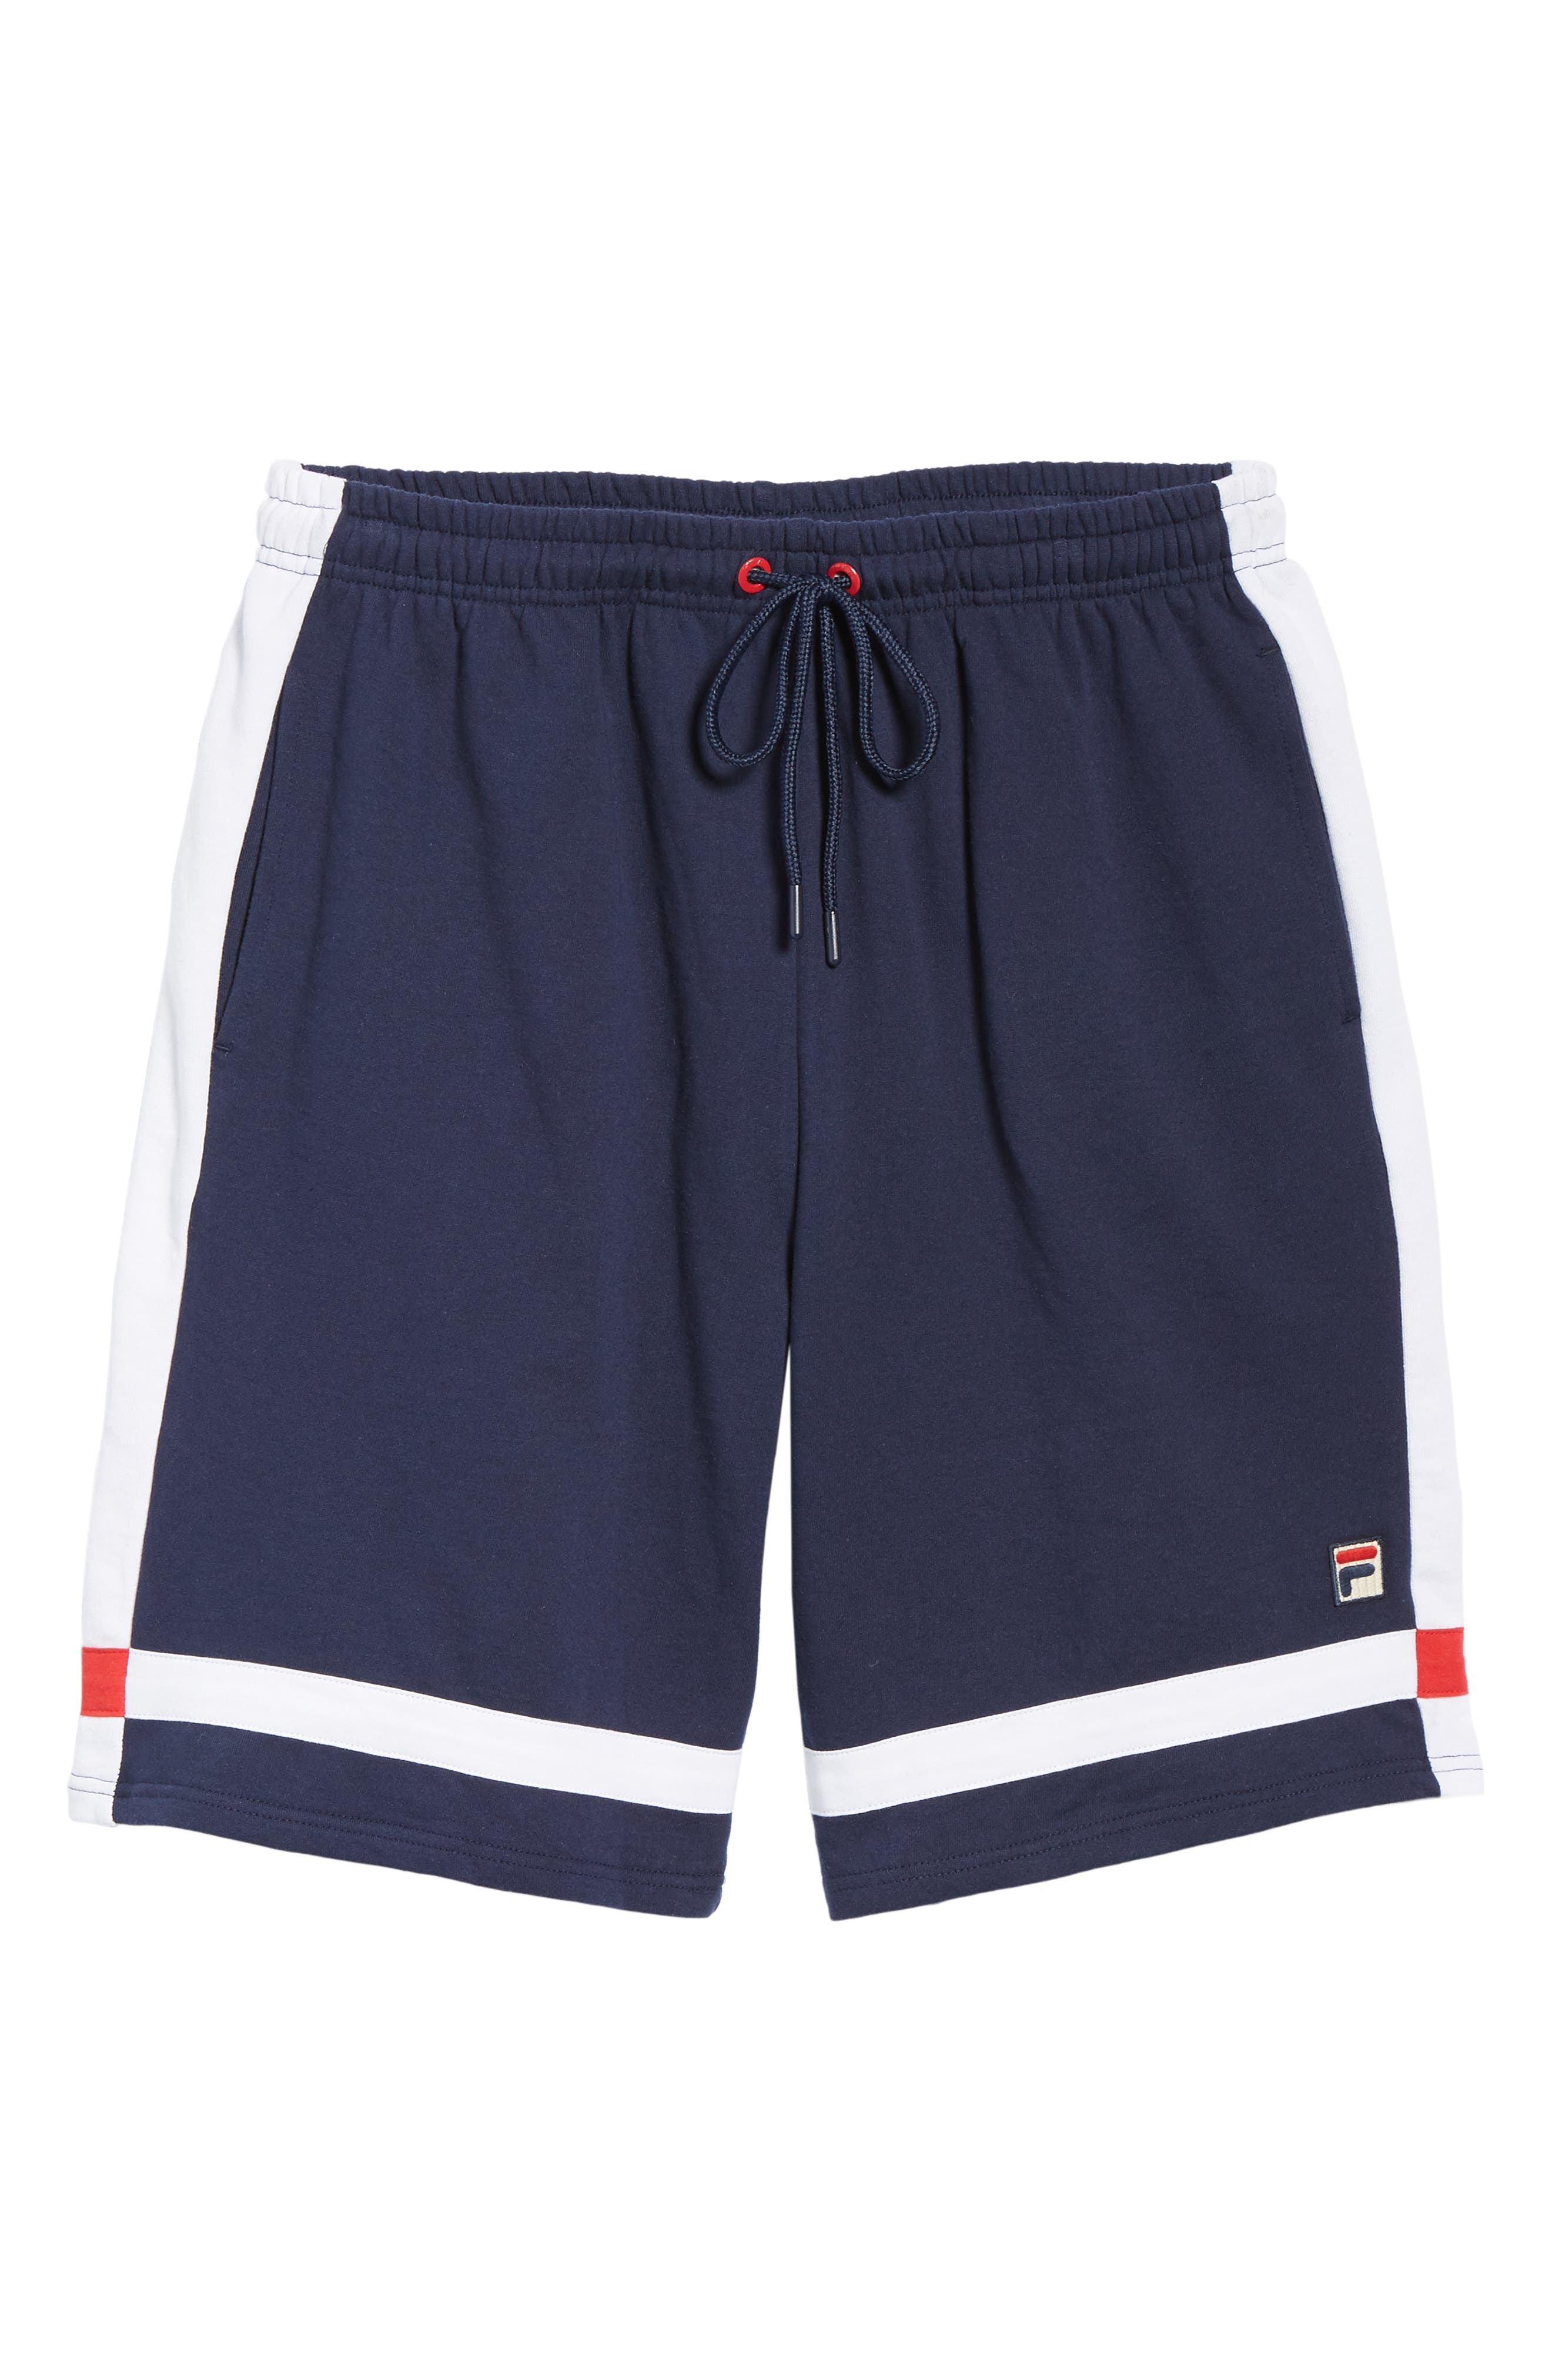 Striped Athletic Shorts,                             Alternate thumbnail 6, color,                             410